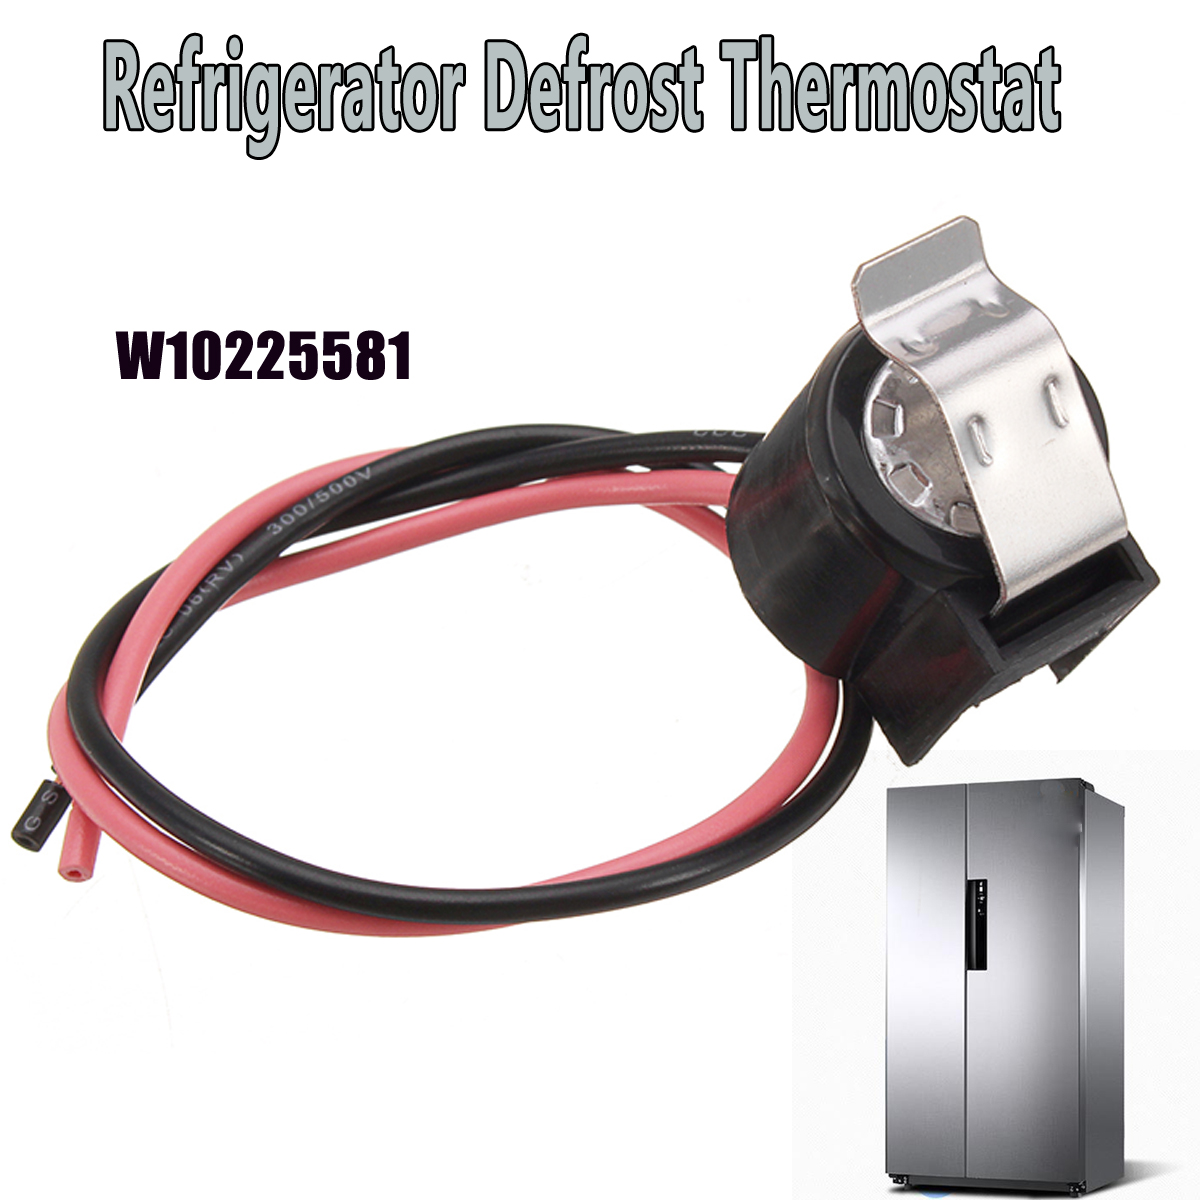 Refrigerator Defrost Bimetal Thermostat Replacement For Whirlpool W10225581 defrost timer tmdex09um1